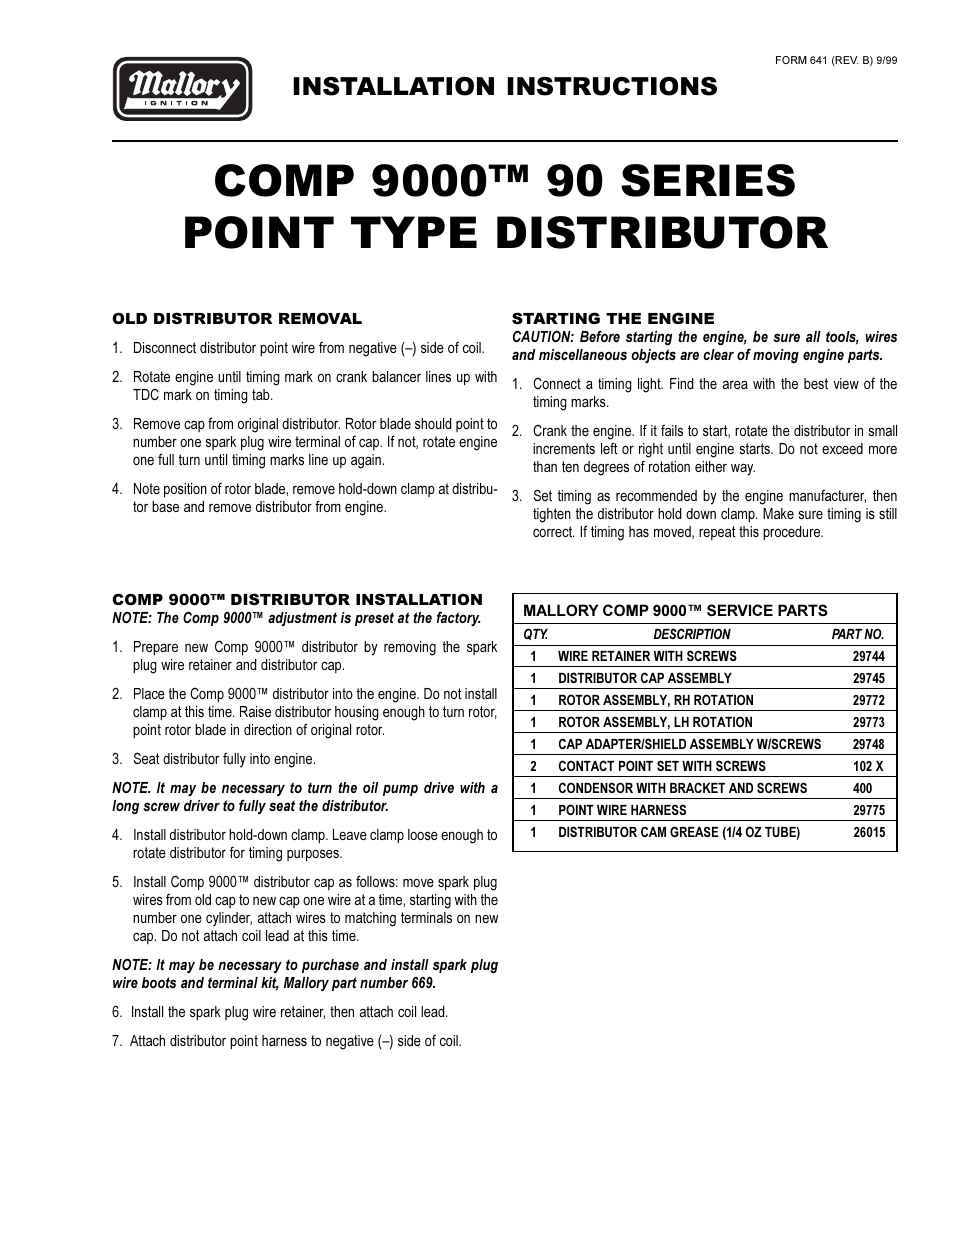 mallory ignition mallory comp 9000 90 series point type distributor user manual 3 pages